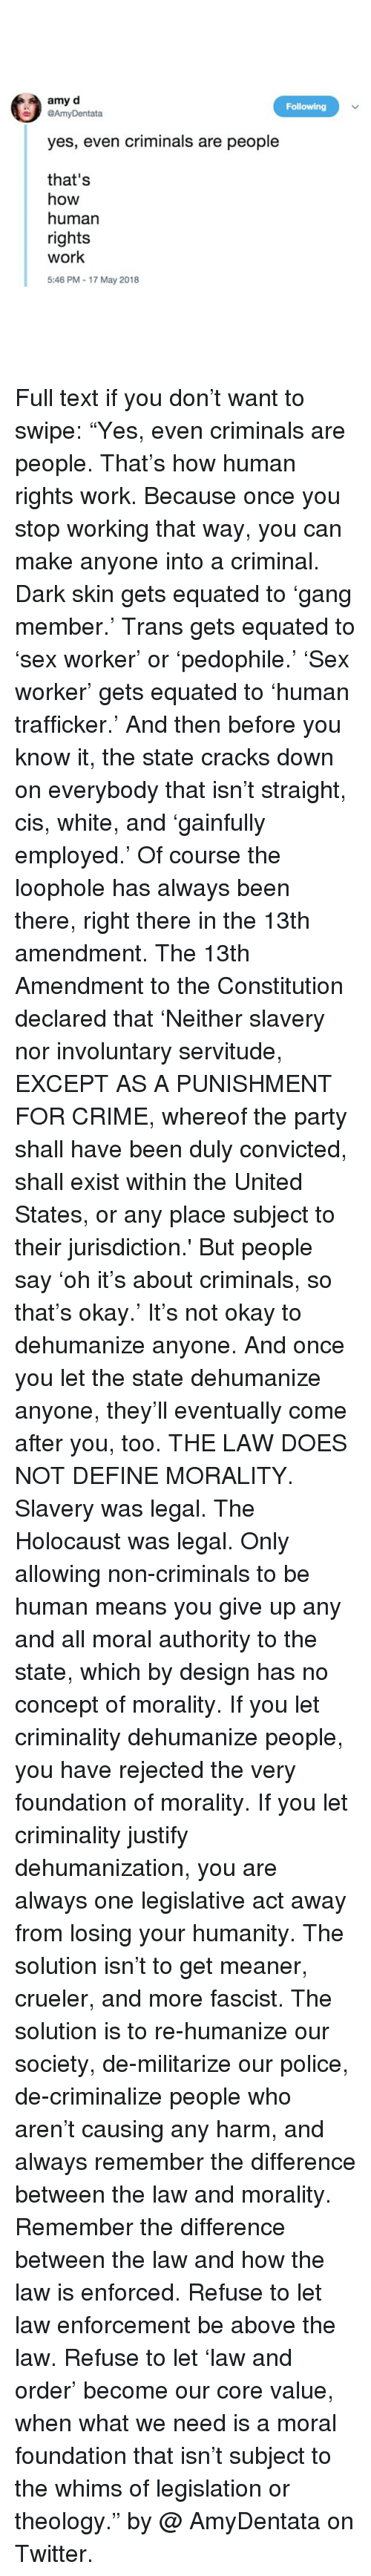 """Above the Law: amy d  @AmyDentata  Following  yes, even criminals are people  that's  how  human  rights  work  5:46 PM - 17 May 2018 Full text if you don't want to swipe: """"Yes, even criminals are people. That's how human rights work. Because once you stop working that way, you can make anyone into a criminal. Dark skin gets equated to 'gang member.' Trans gets equated to 'sex worker' or 'pedophile.' 'Sex worker' gets equated to 'human trafficker.' And then before you know it, the state cracks down on everybody that isn't straight, cis, white, and 'gainfully employed.' Of course the loophole has always been there, right there in the 13th amendment. The 13th Amendment to the Constitution declared that 'Neither slavery nor involuntary servitude, EXCEPT AS A PUNISHMENT FOR CRIME, whereof the party shall have been duly convicted, shall exist within the United States, or any place subject to their jurisdiction.' But people say 'oh it's about criminals, so that's okay.' It's not okay to dehumanize anyone. And once you let the state dehumanize anyone, they'll eventually come after you, too. THE LAW DOES NOT DEFINE MORALITY. Slavery was legal. The Holocaust was legal. Only allowing non-criminals to be human means you give up any and all moral authority to the state, which by design has no concept of morality. If you let criminality dehumanize people, you have rejected the very foundation of morality. If you let criminality justify dehumanization, you are always one legislative act away from losing your humanity. The solution isn't to get meaner, crueler, and more fascist. The solution is to re-humanize our society, de-militarize our police, de-criminalize people who aren't causing any harm, and always remember the difference between the law and morality. Remember the difference between the law and how the law is enforced. Refuse to let law enforcement be above the law. Refuse to let 'law and order' become our core value, when what we need is a moral foundation that isn't su"""